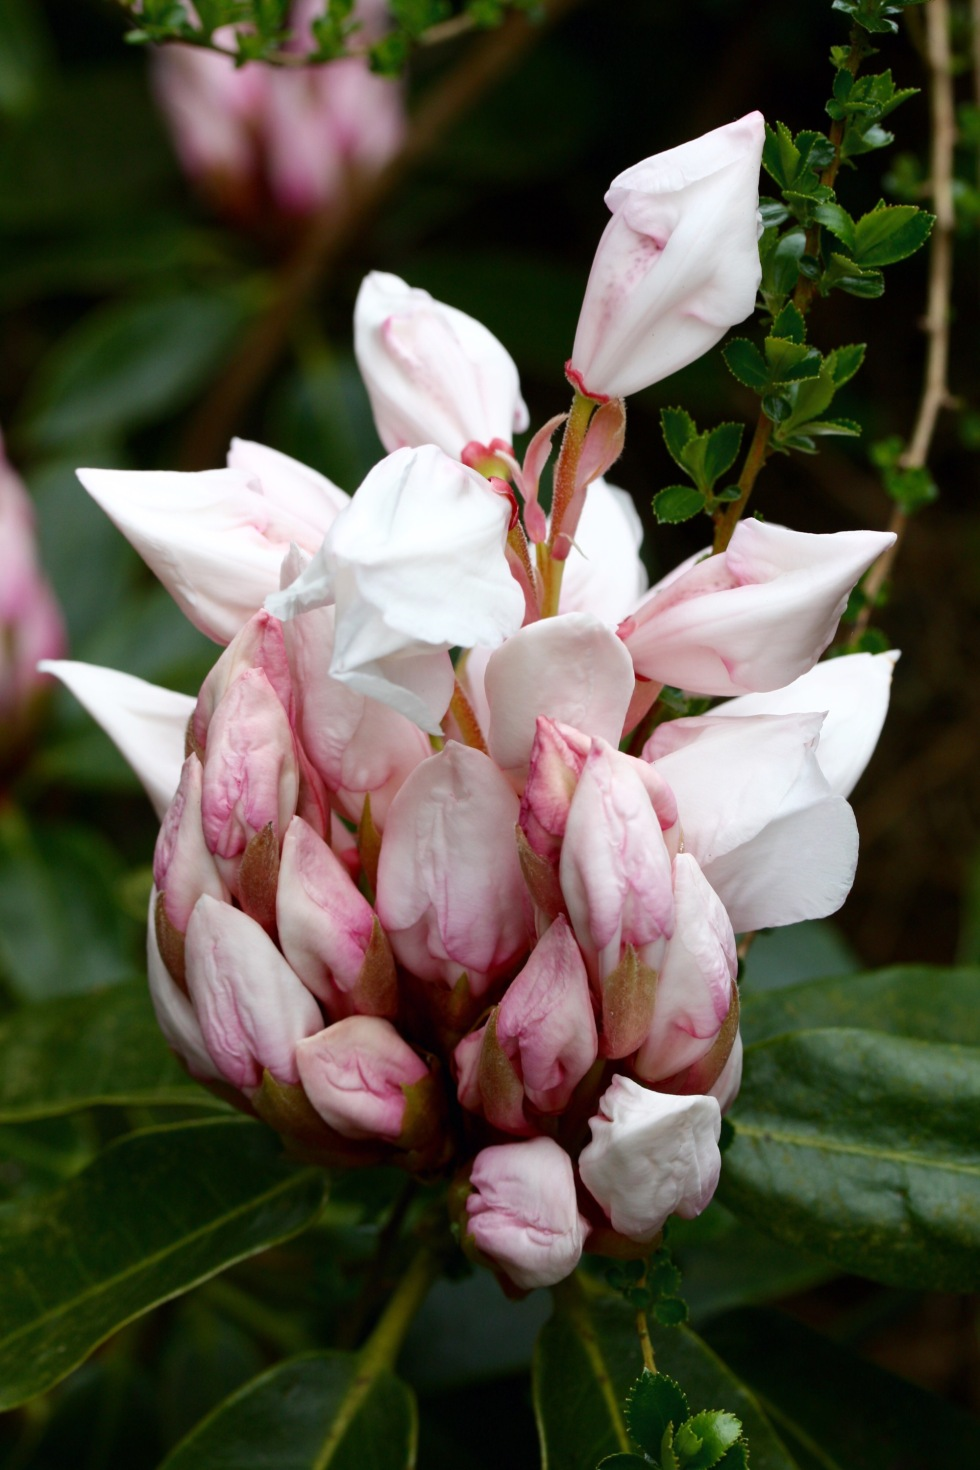 Rhododendron buds, The American Garden, May 2015